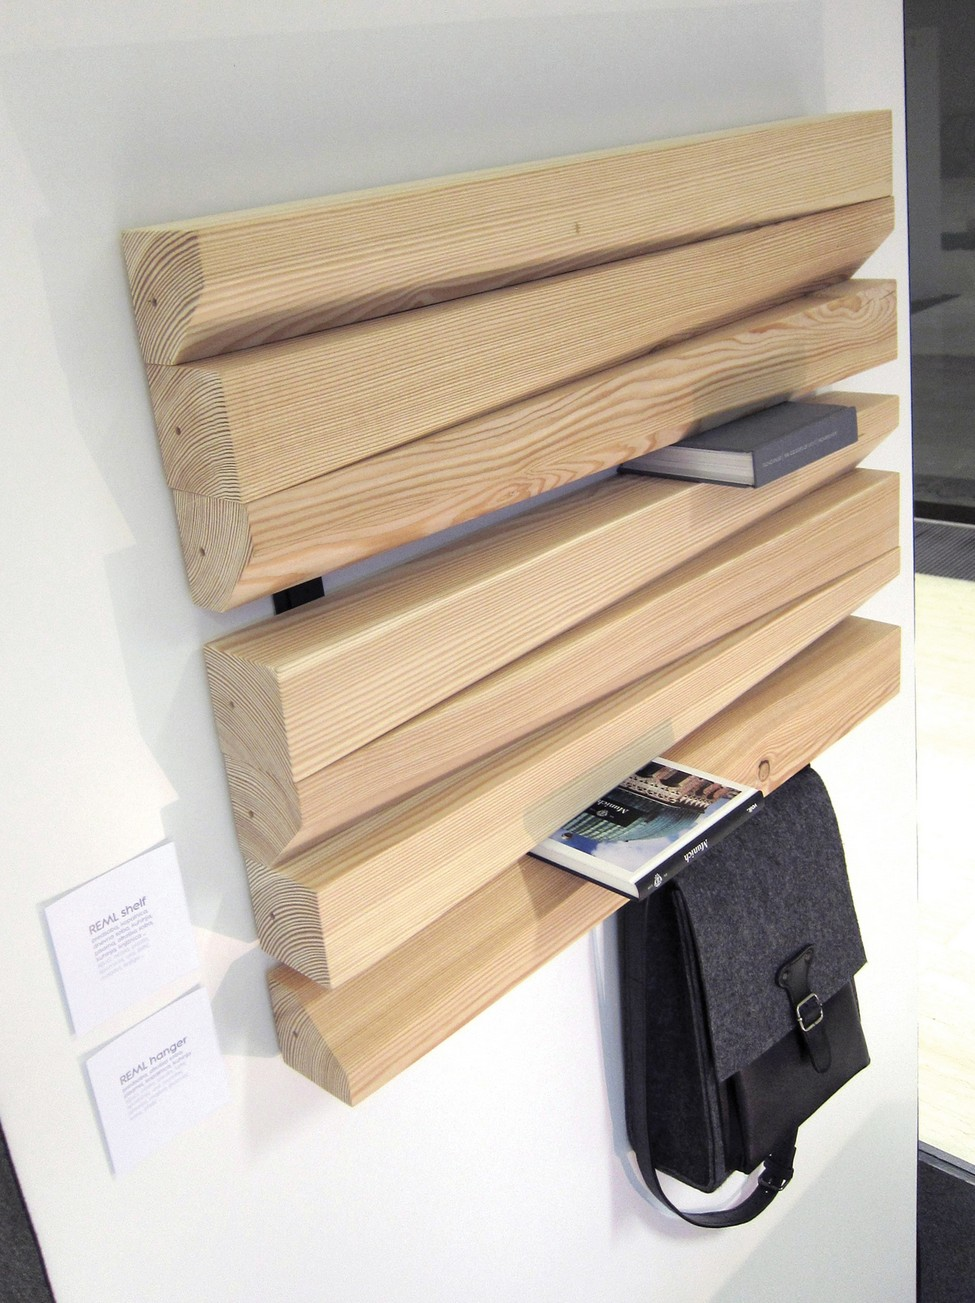 Elegant Shelving Unit With Surprising Functionality by TRIpike [Video]